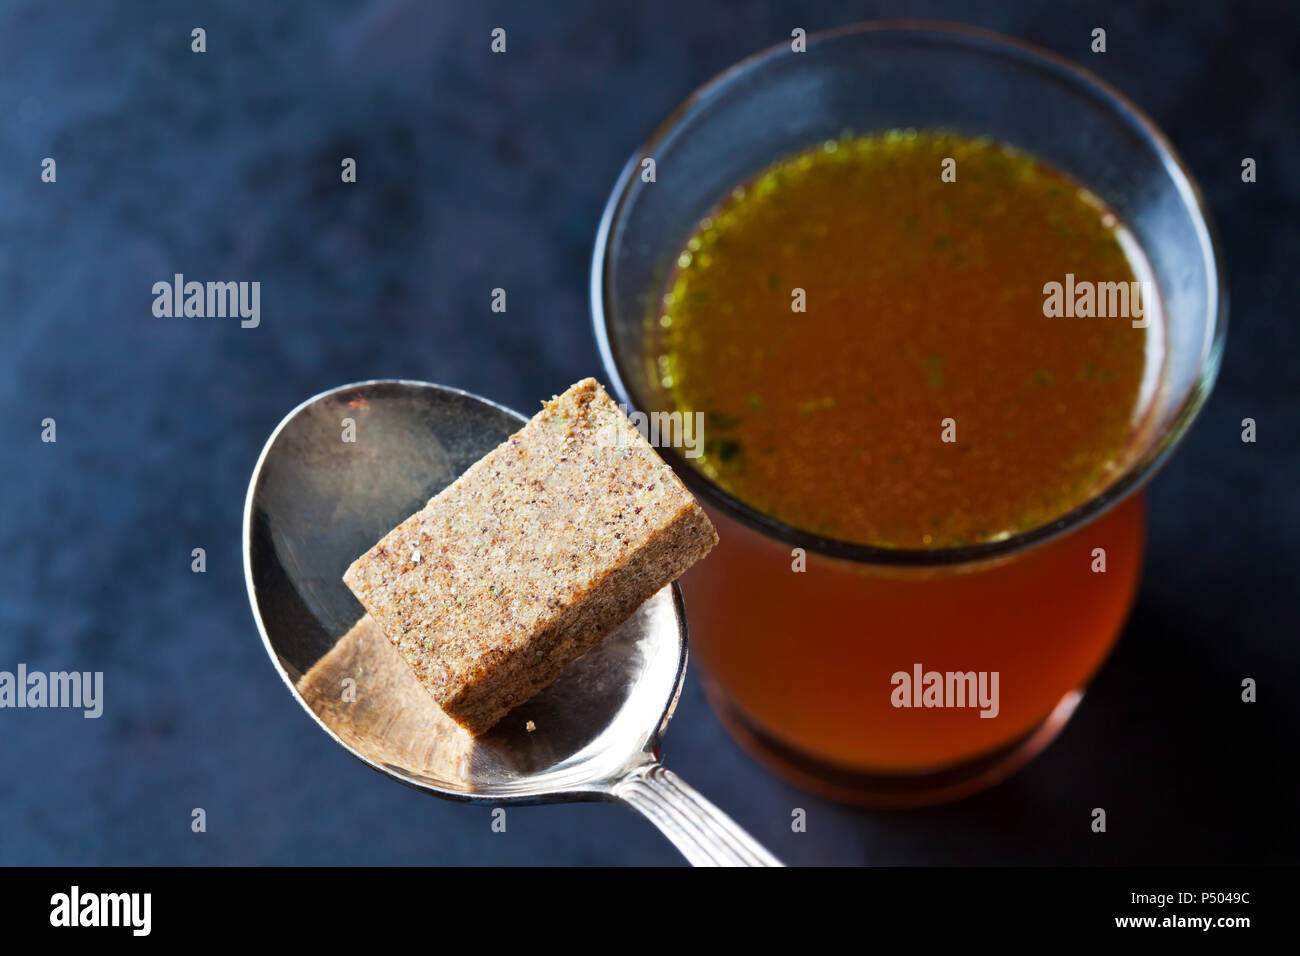 Glass of stock and stock cube on tea spoon - Stock Image